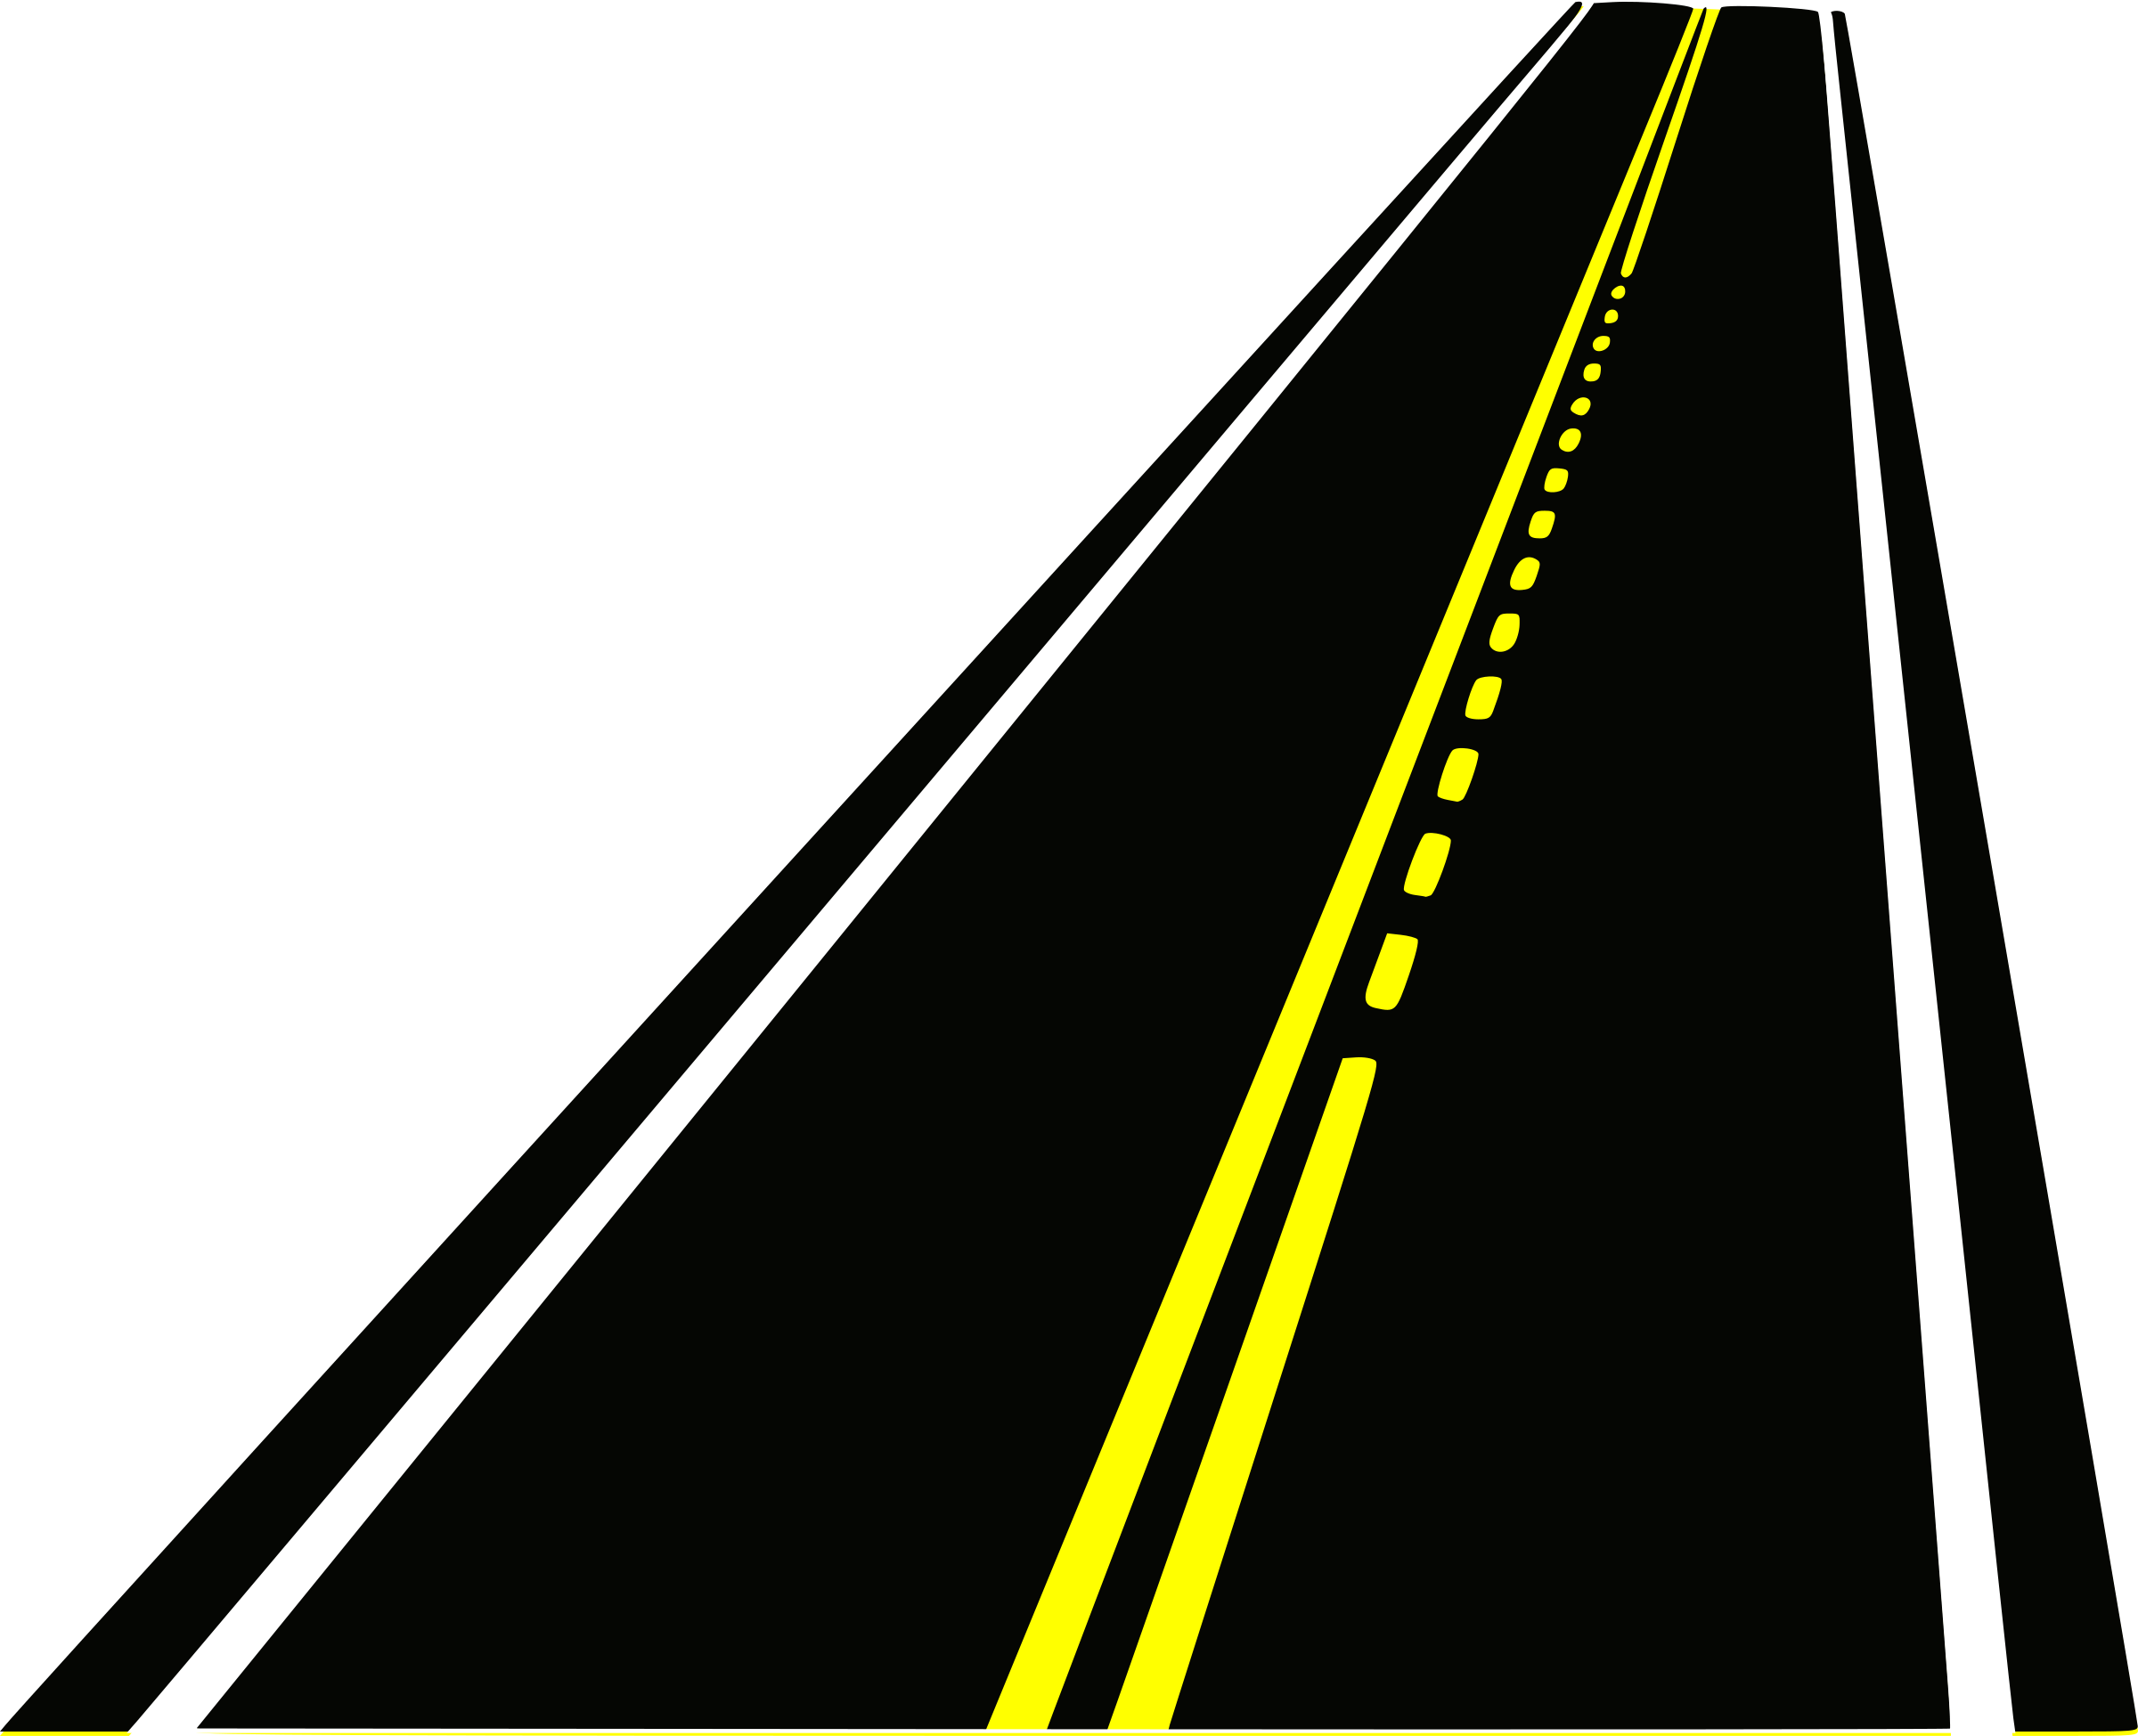 Freeway clipart road background #4